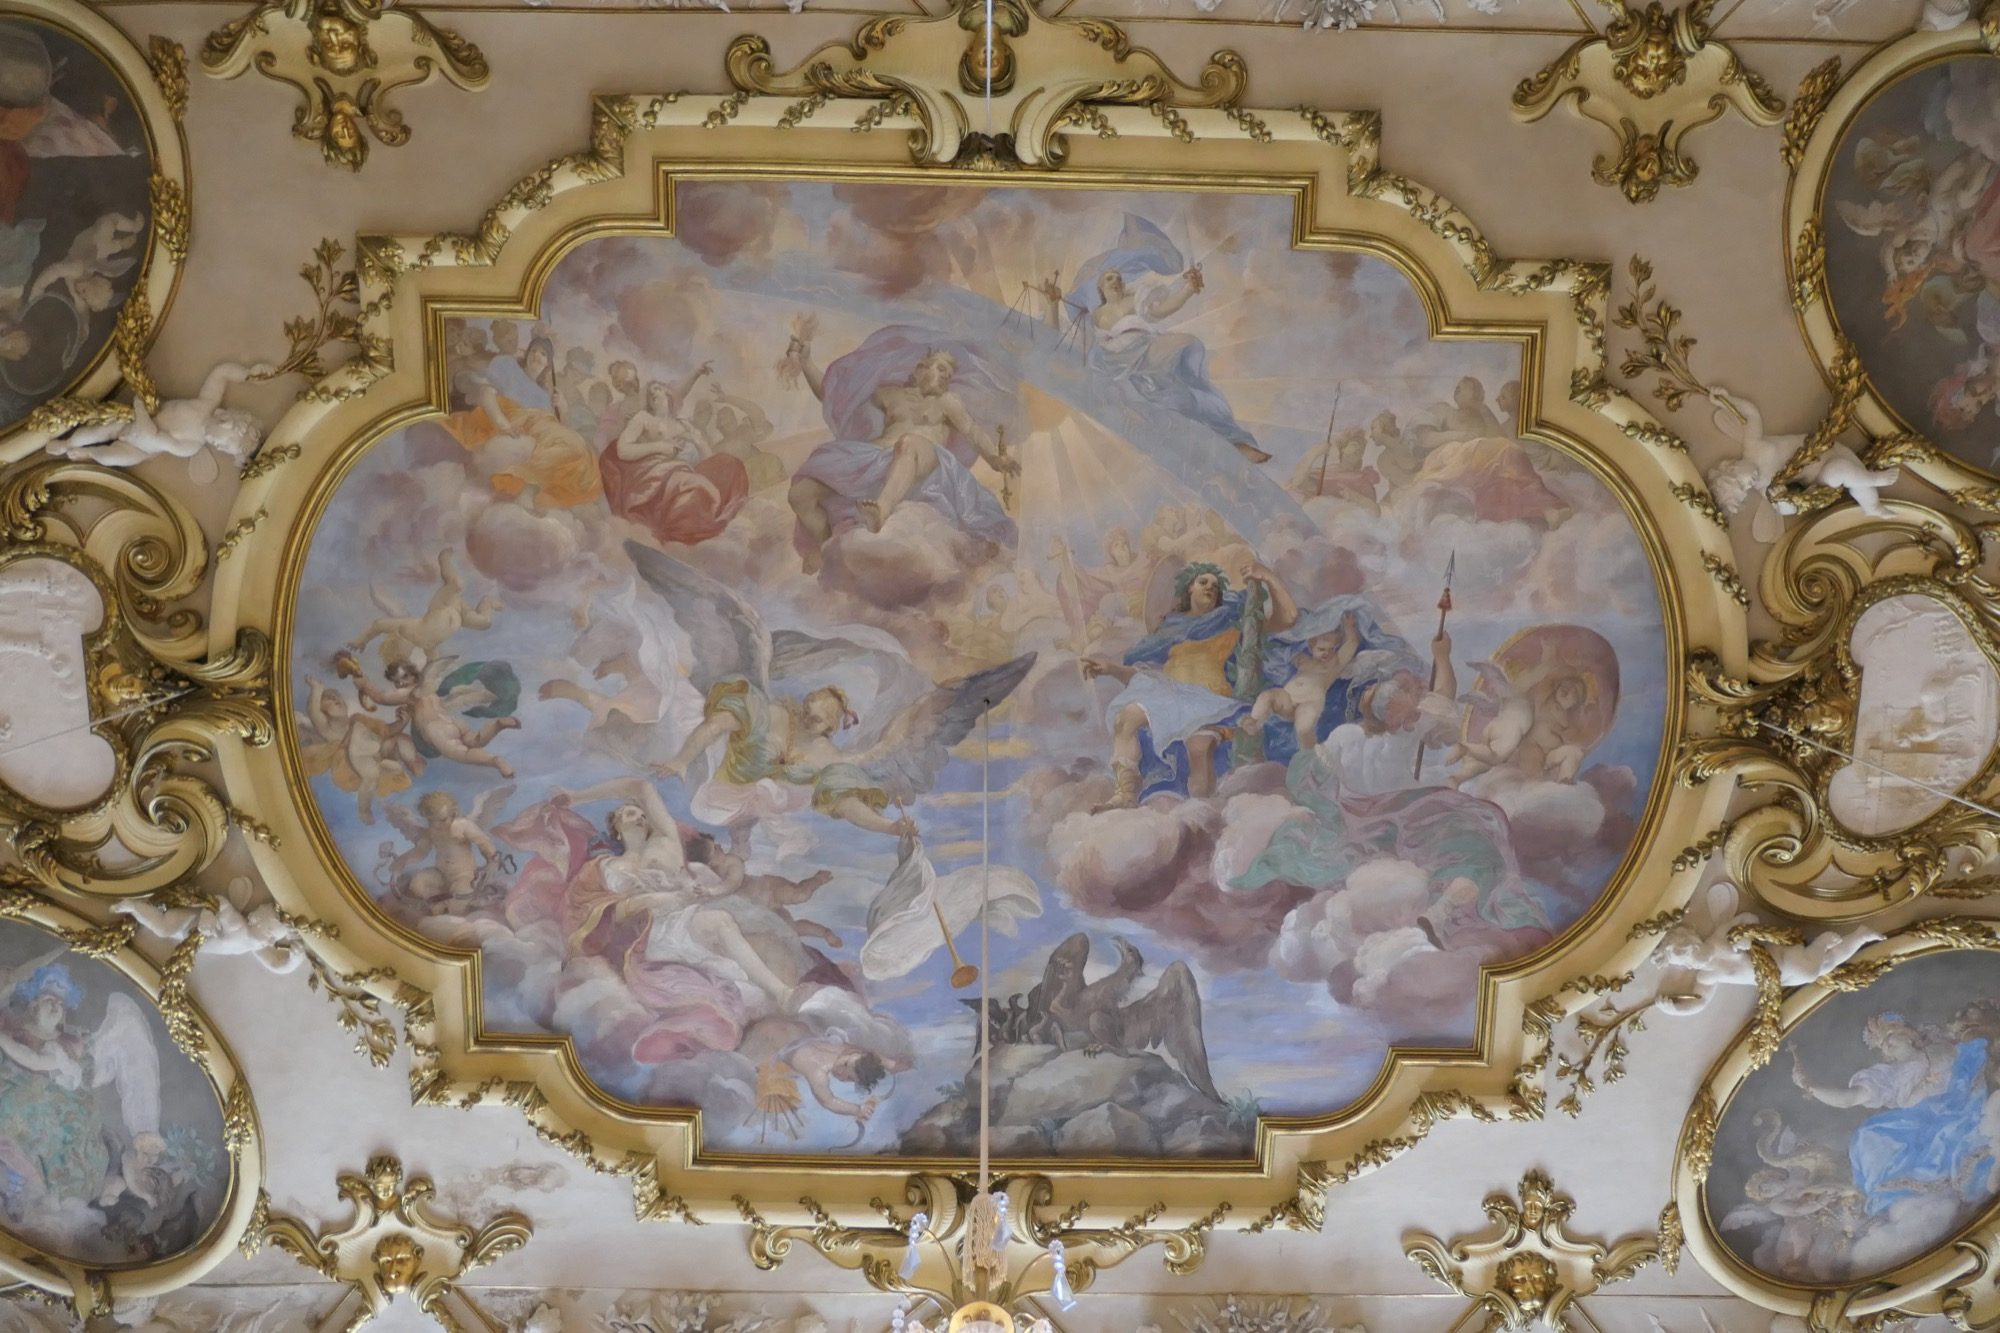 Ceiling Painting at the Ancestral Hall